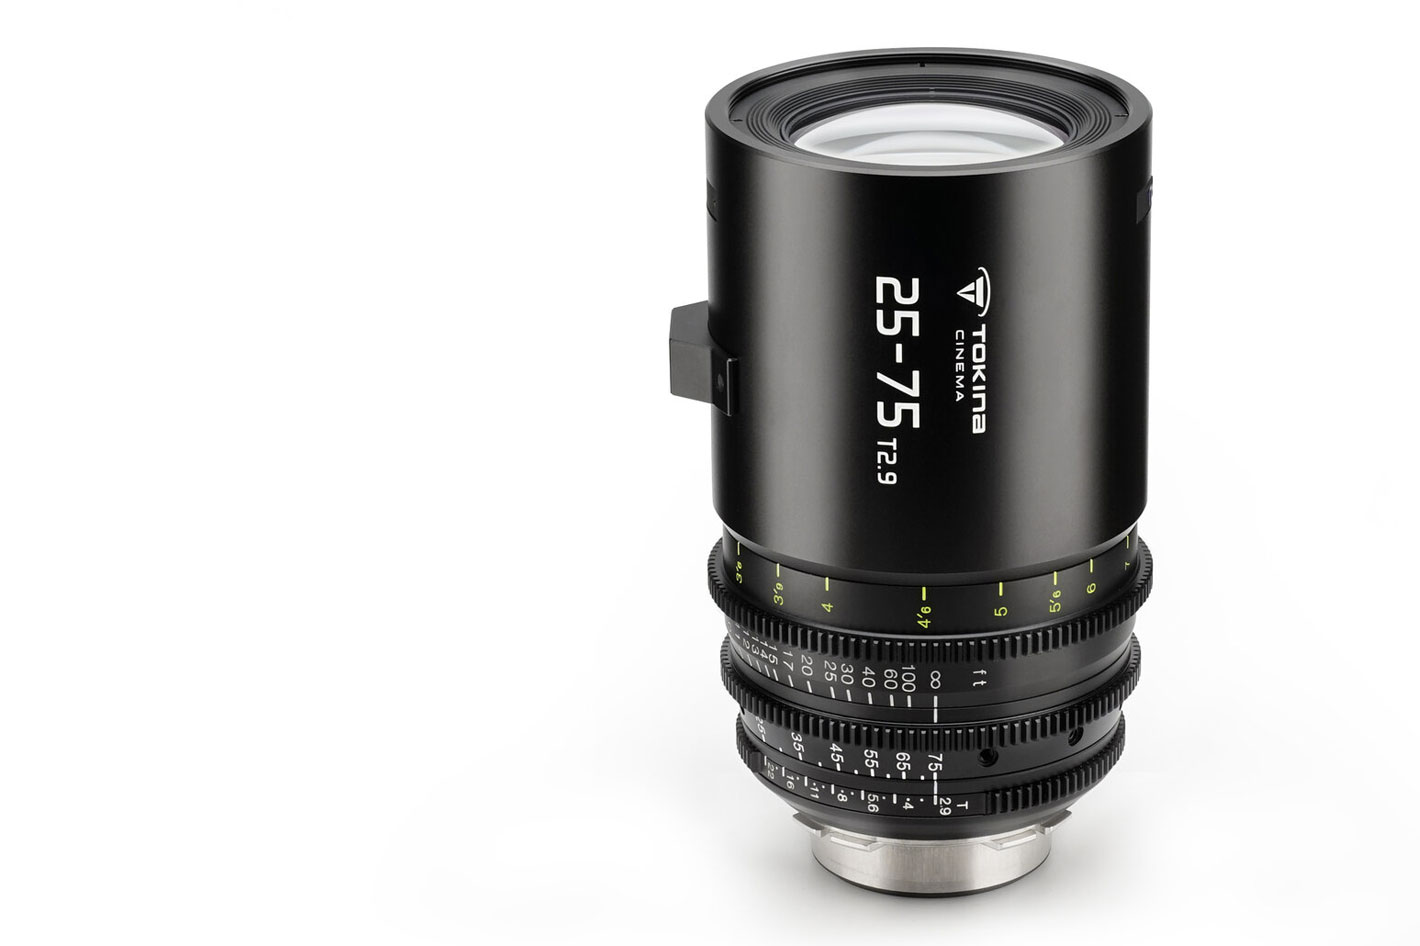 The all new Tokina Cinema 25-75mm T2.9 is finally coming